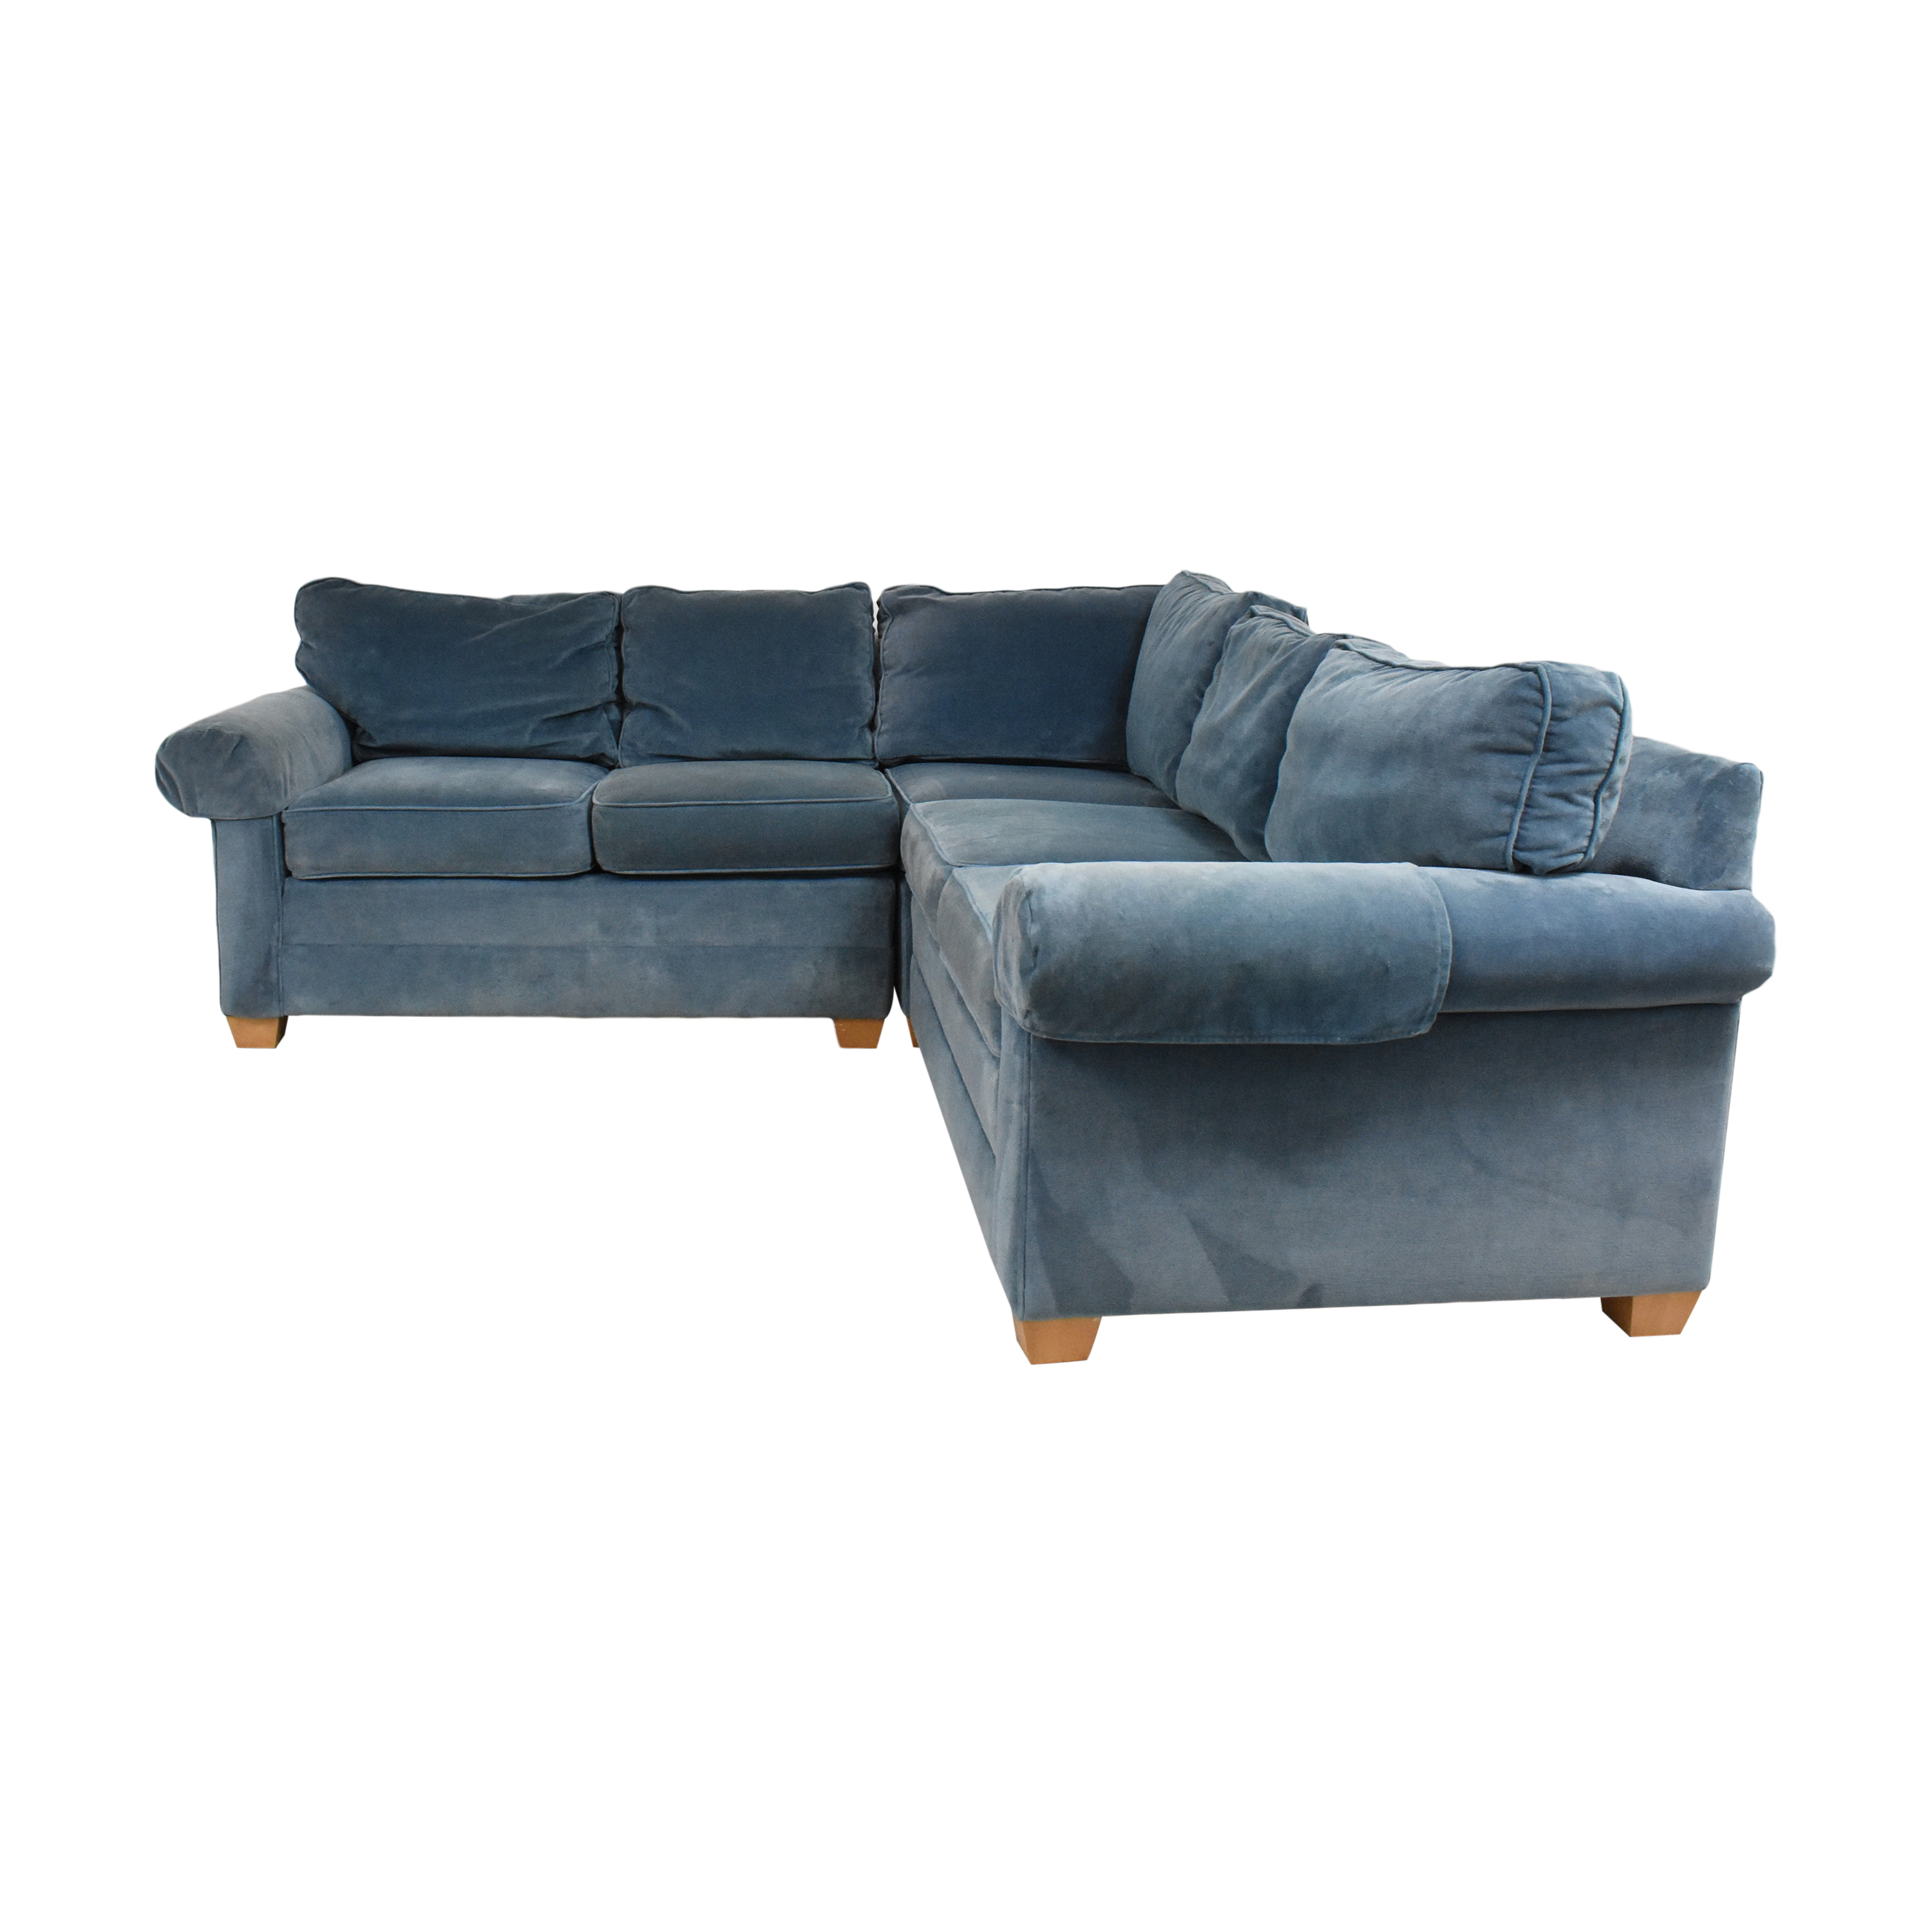 buy Ethan Allen Bennett Three Piece Sectional Sofa Ethan Allen Sectionals